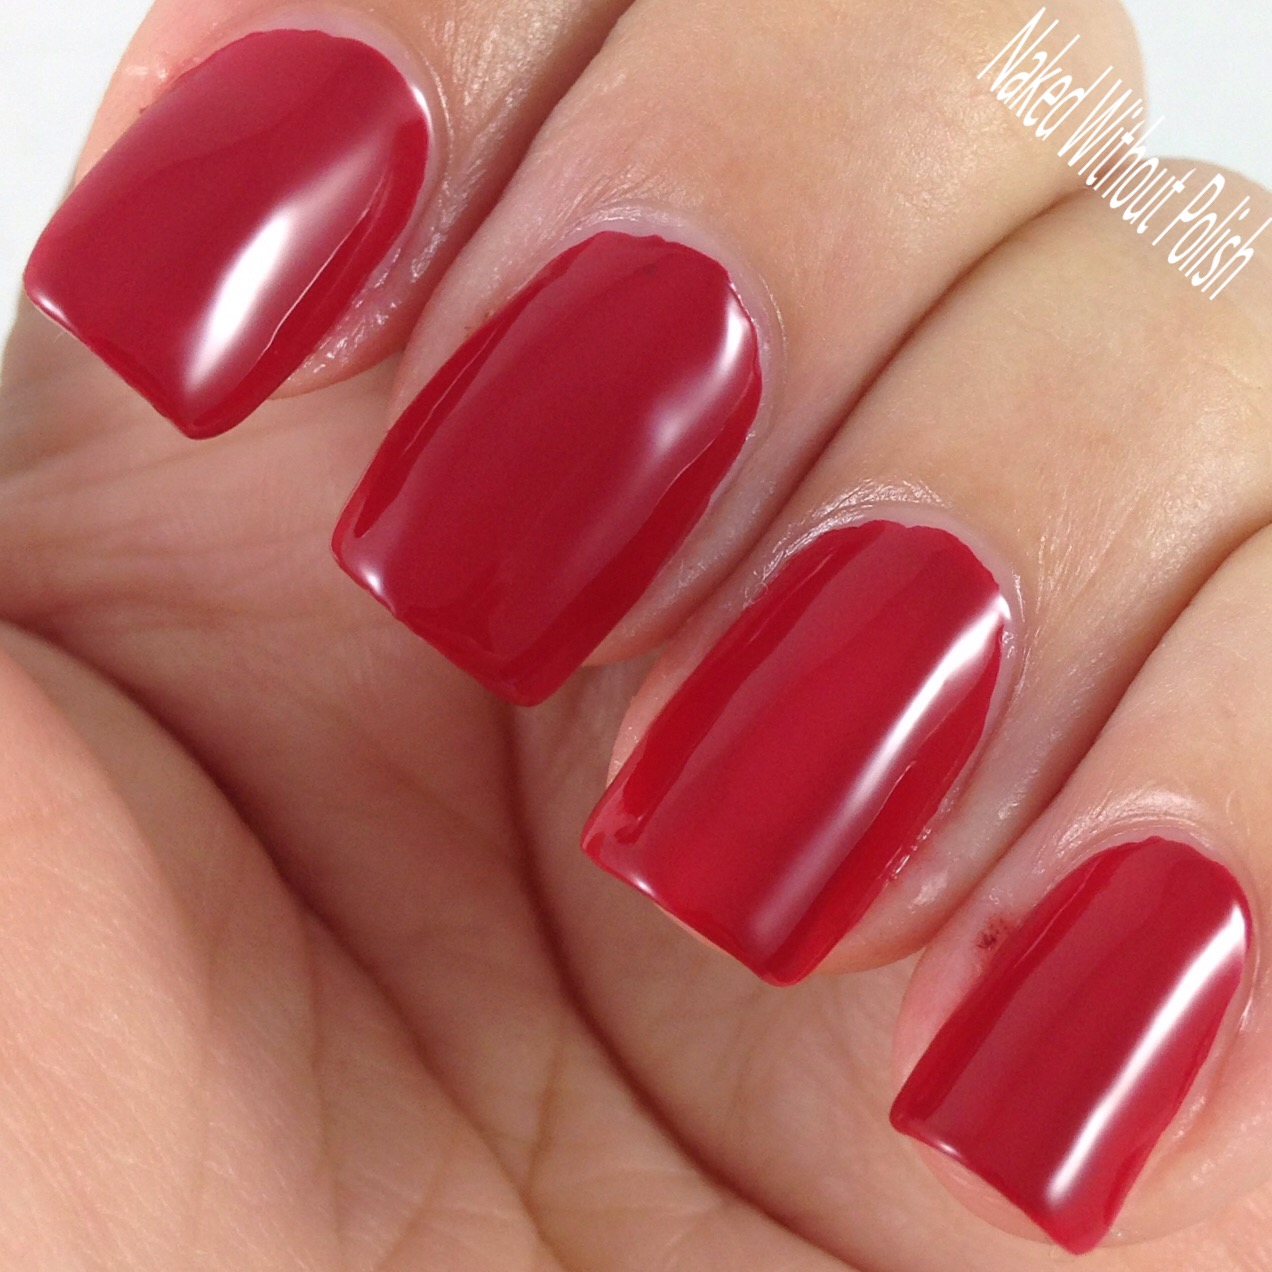 Essie-Preen-Me-With-the-Band-5